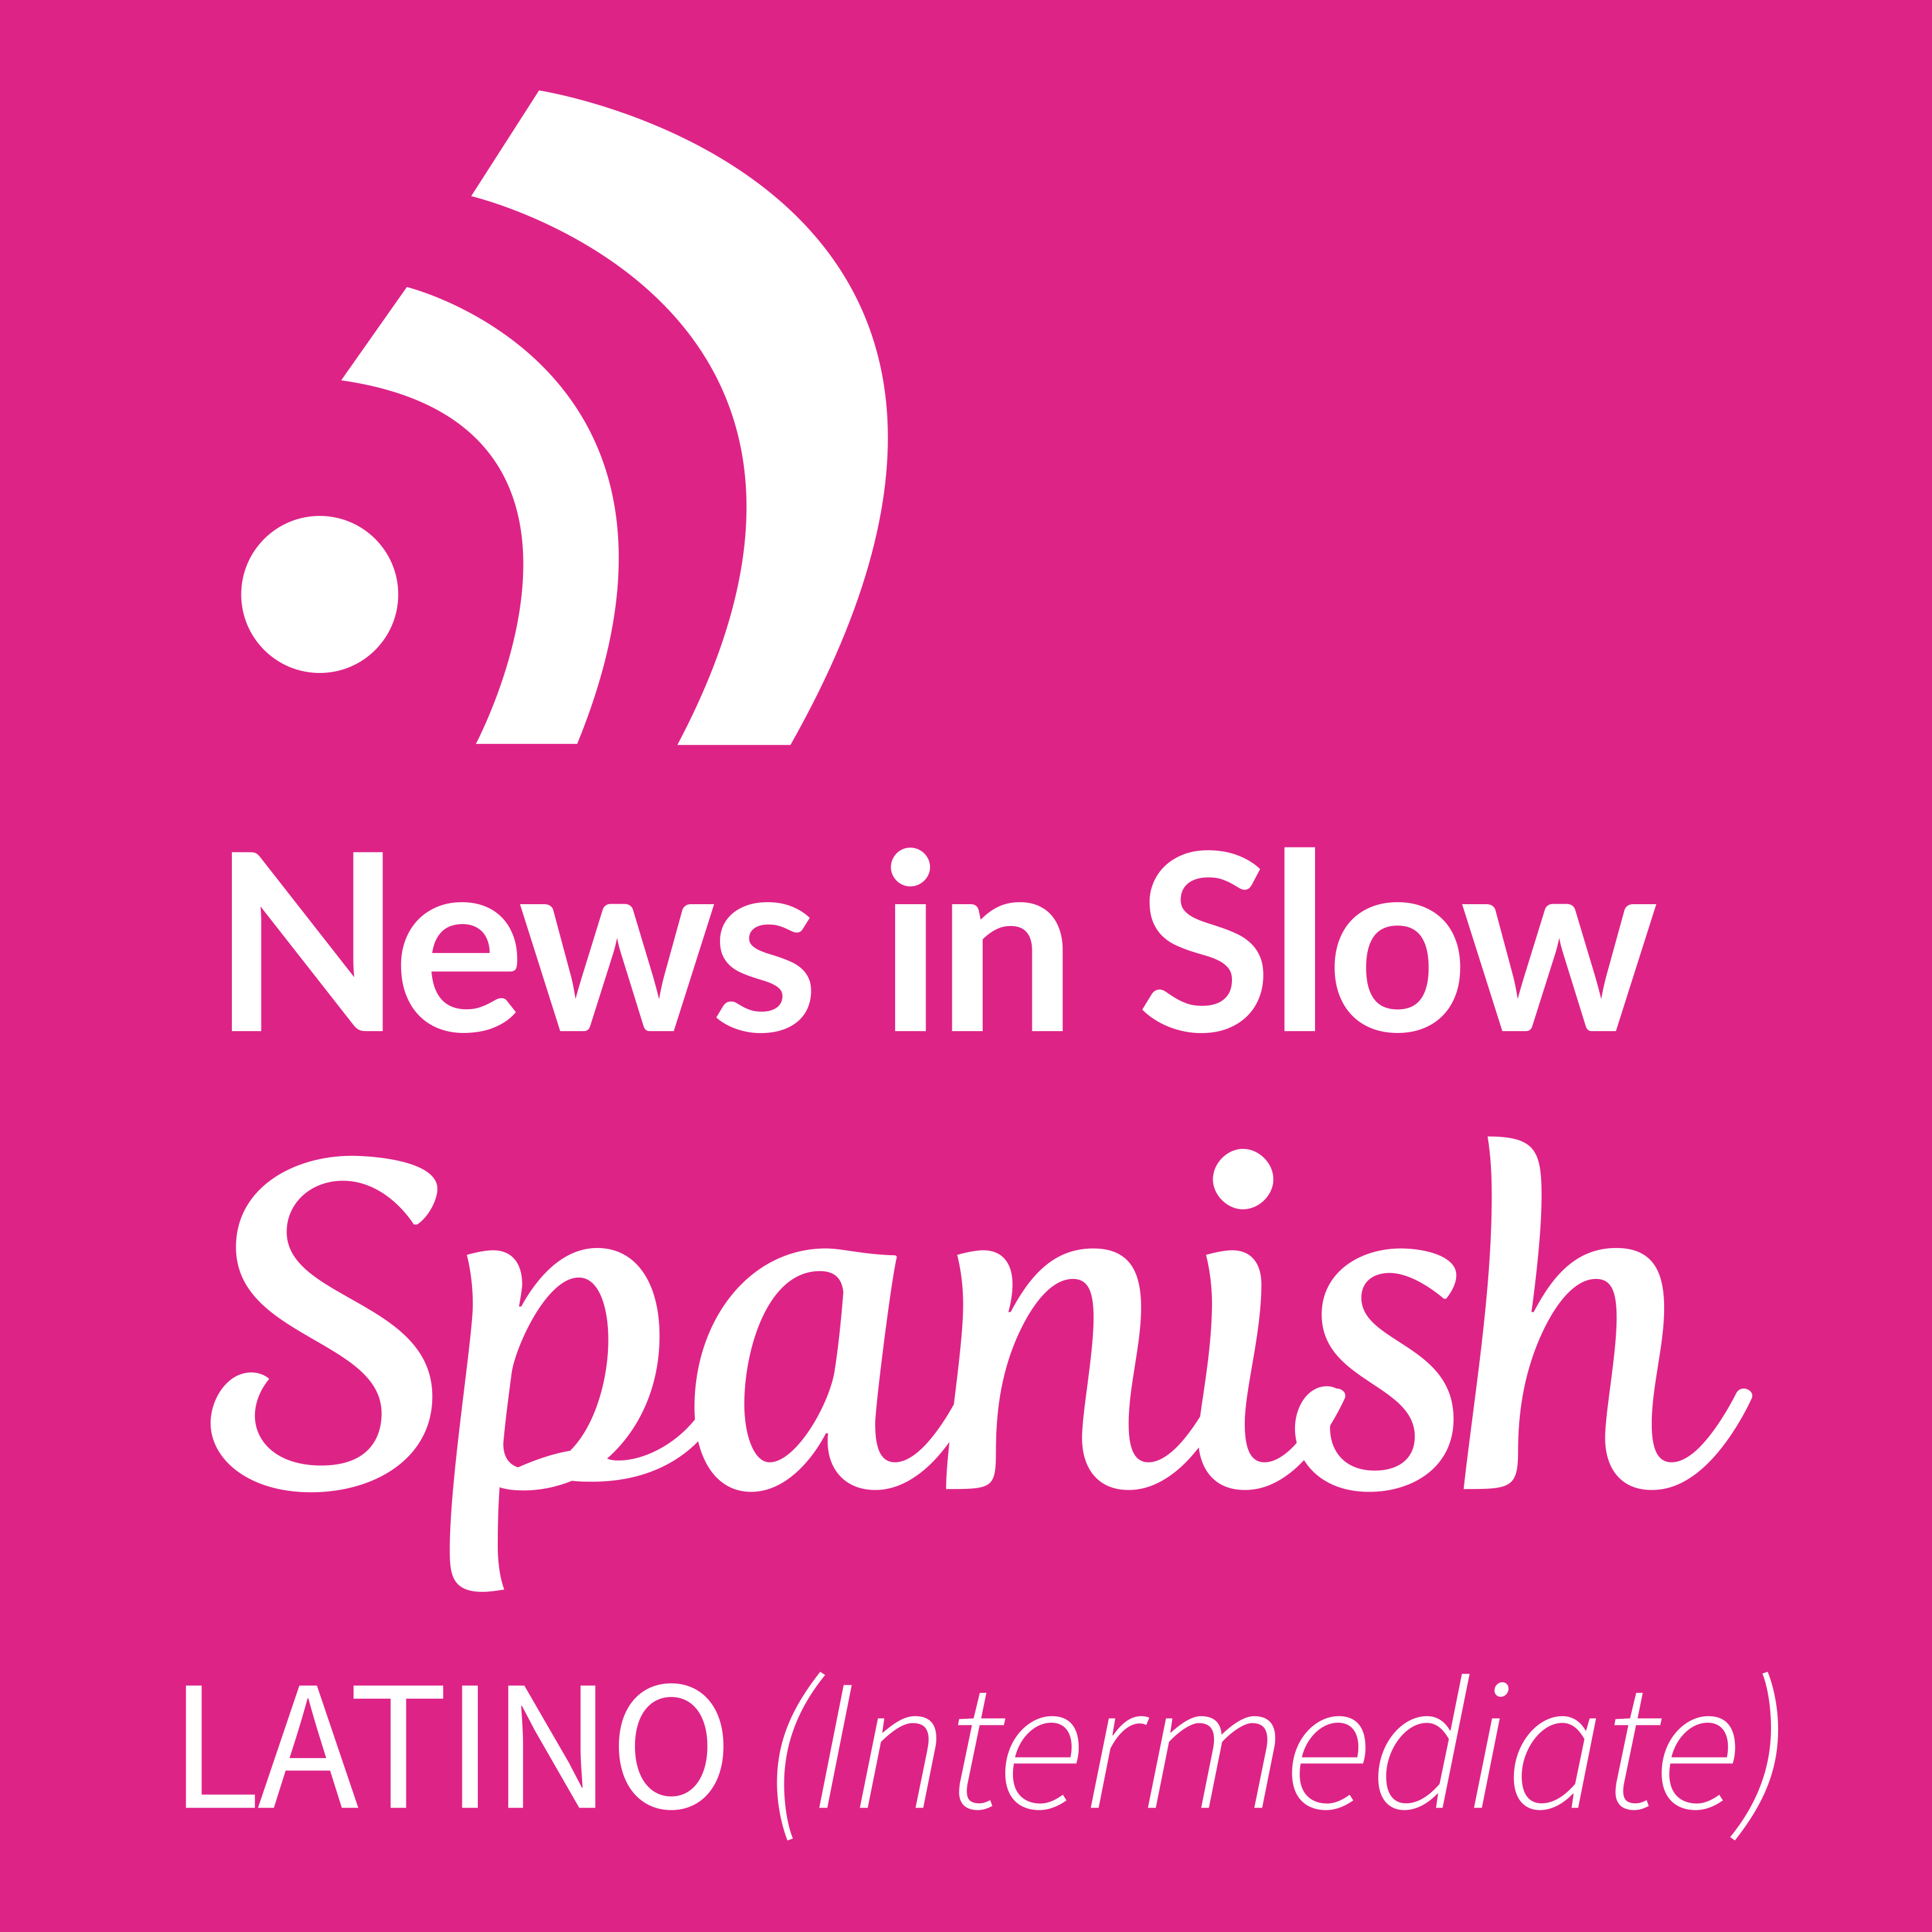 News in Slow Spanish Latino - # 171 - Language learning in the context of current events